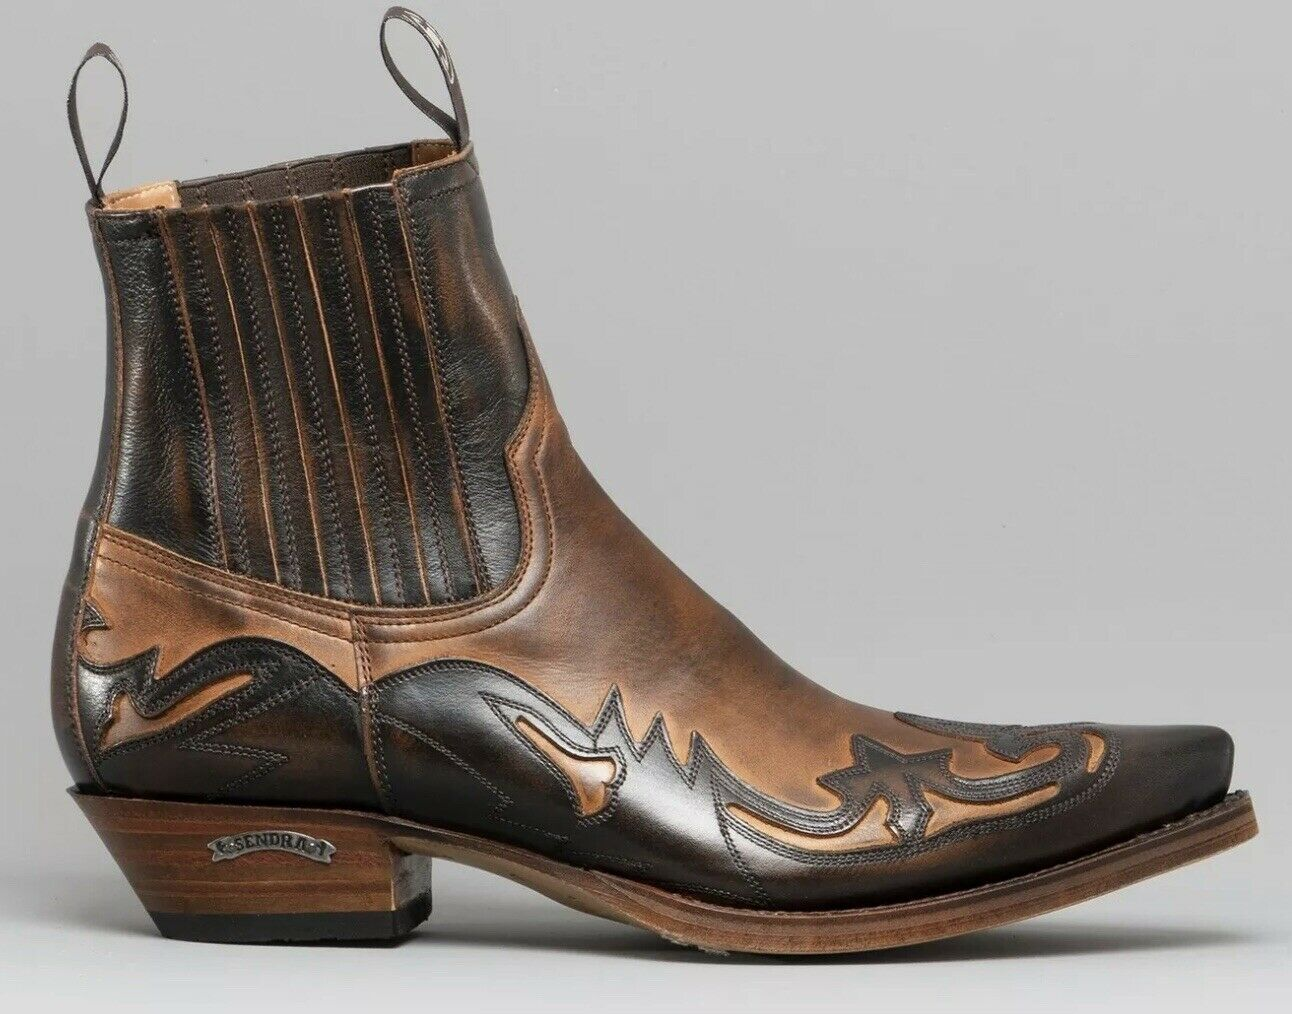 botas SENDRA, 4660, Marrón Antiguo, botas de vaquero, botas, botas motorista occidental, nuevo